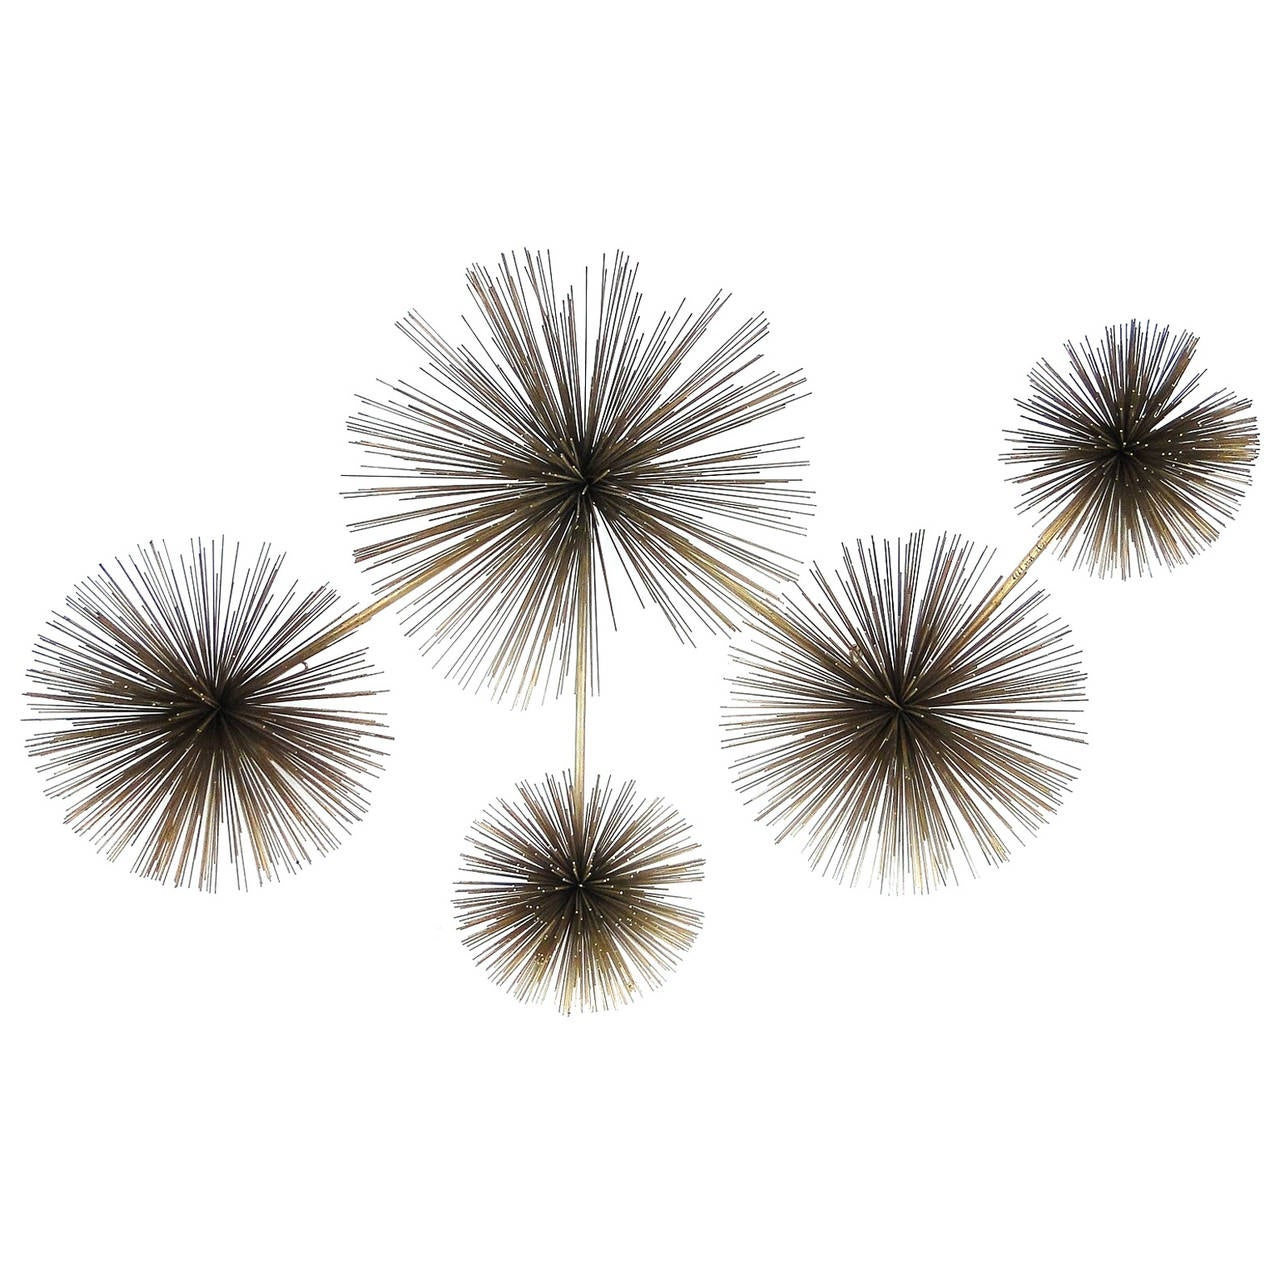 Metal Urchin Wall Decor : Midcentury curtis jere quot pom or sea urchin wall